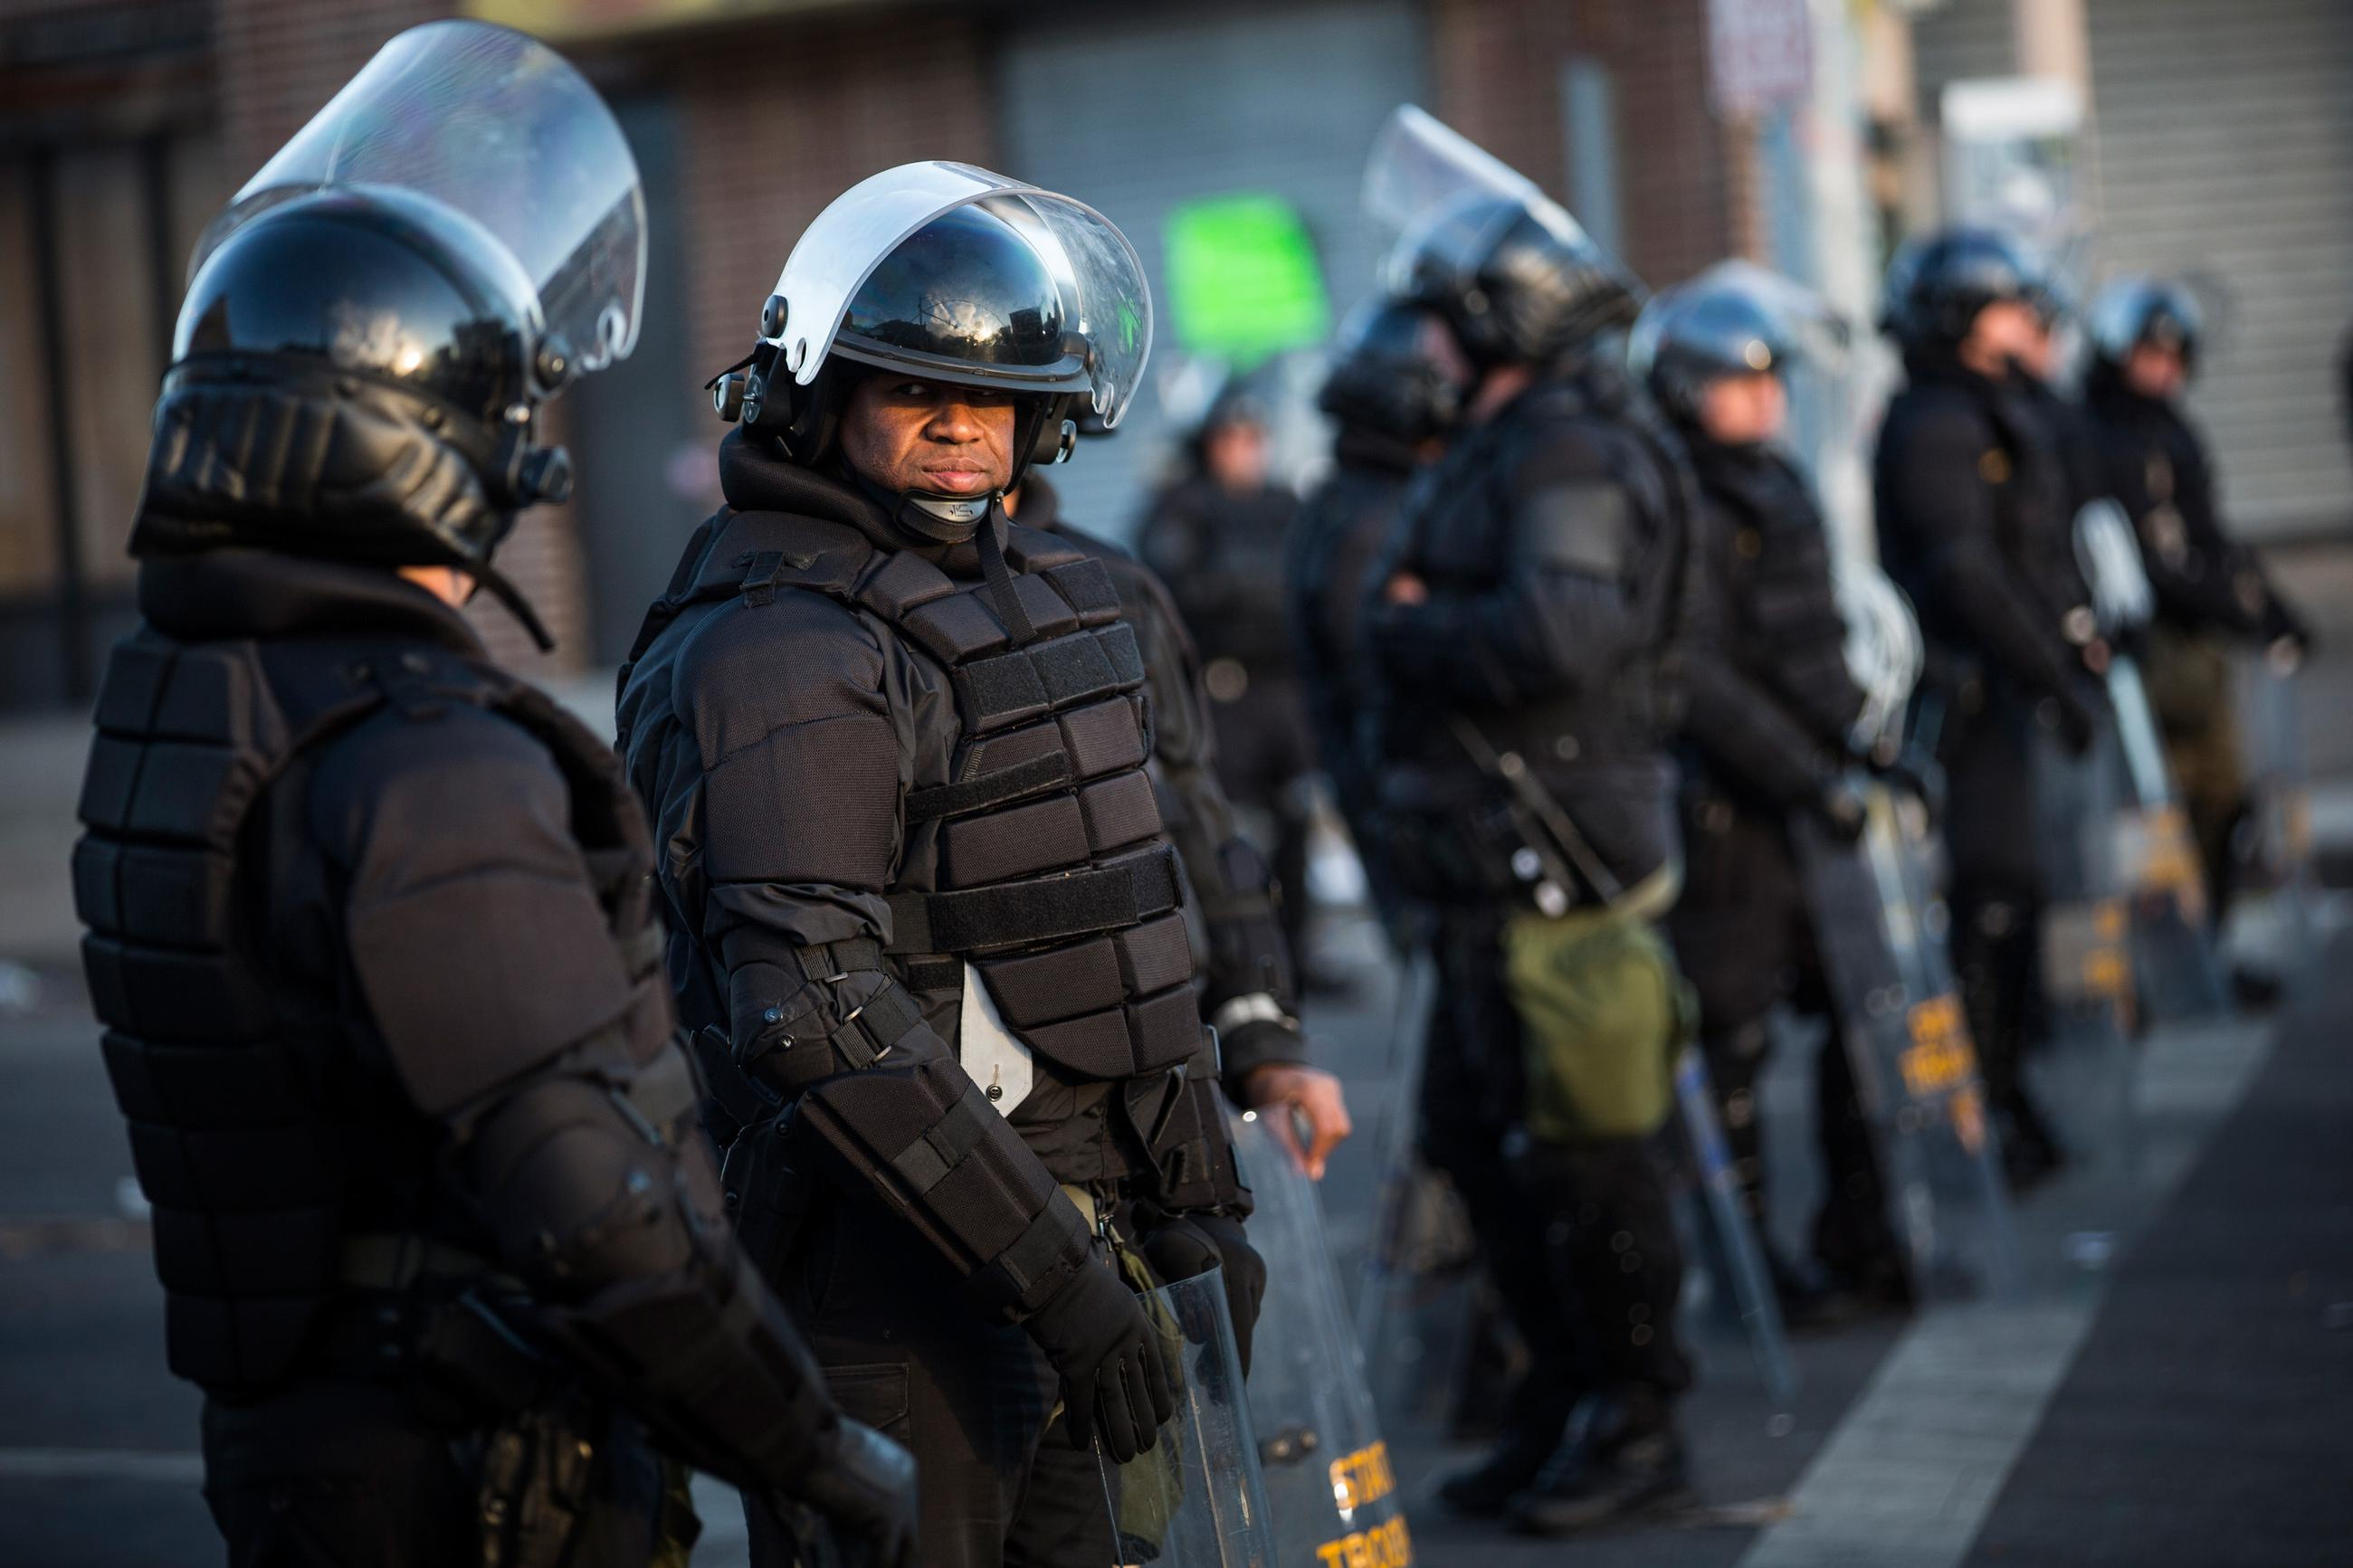 Obama on Baltimore: Violent Rioters 'Need to Be Treated as Criminals'